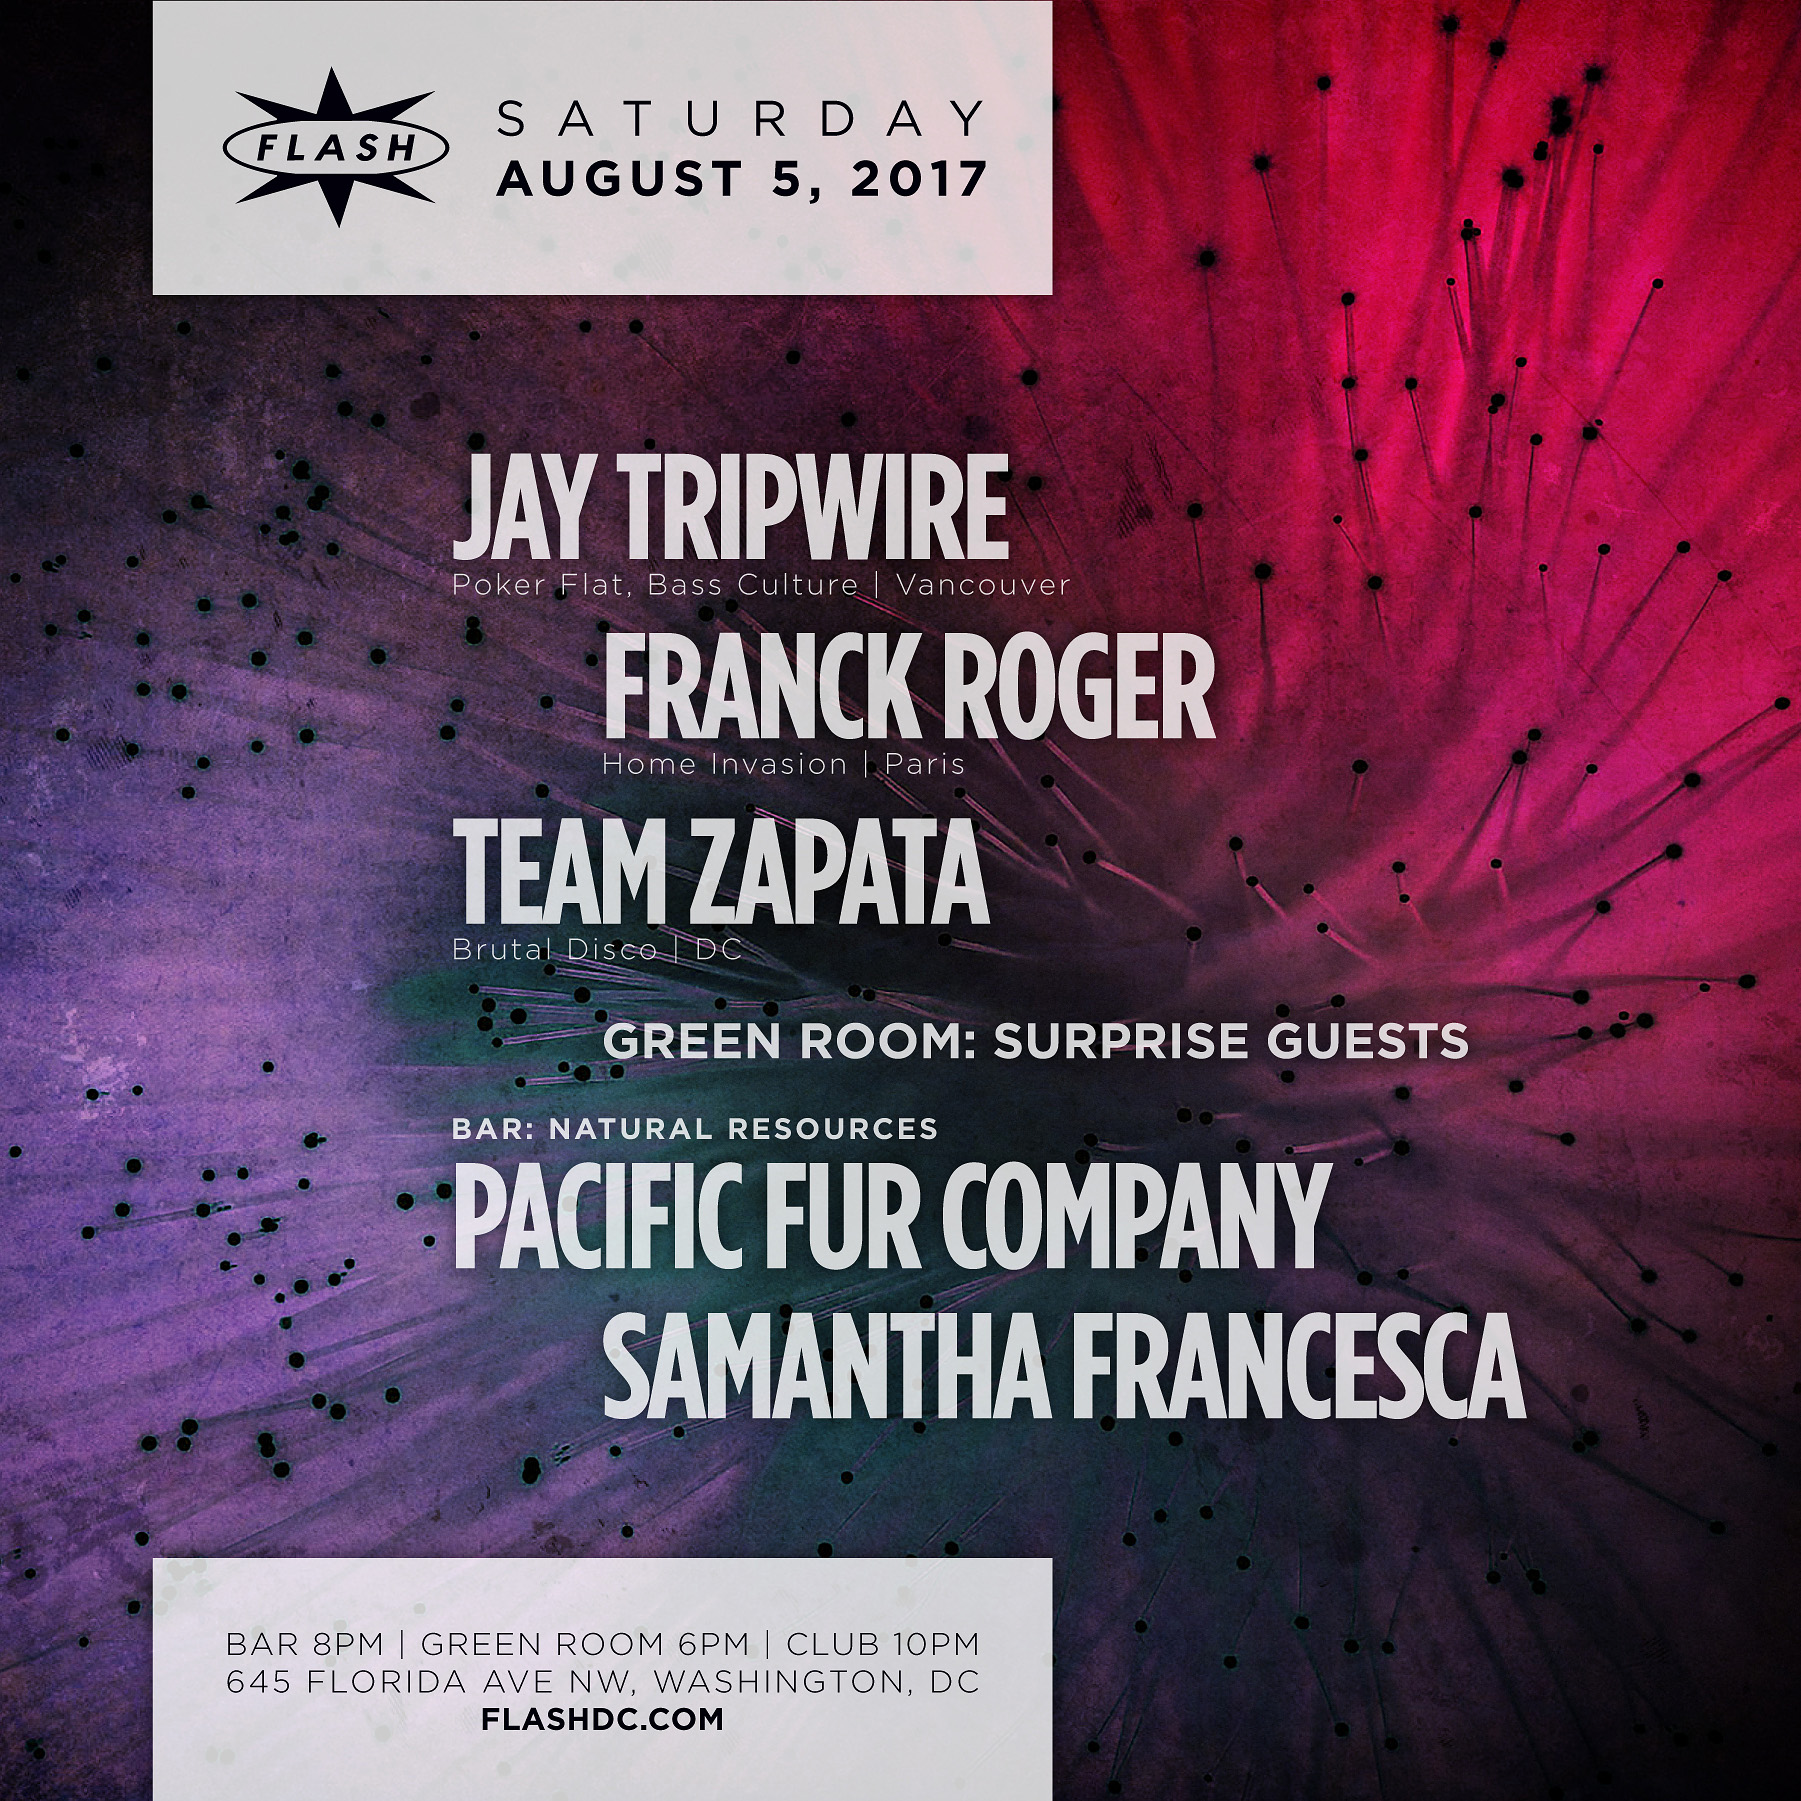 Jay Tripwire - Franck Roger - Team Zapata - Surprise Guests - Natural Resources event thumbnail